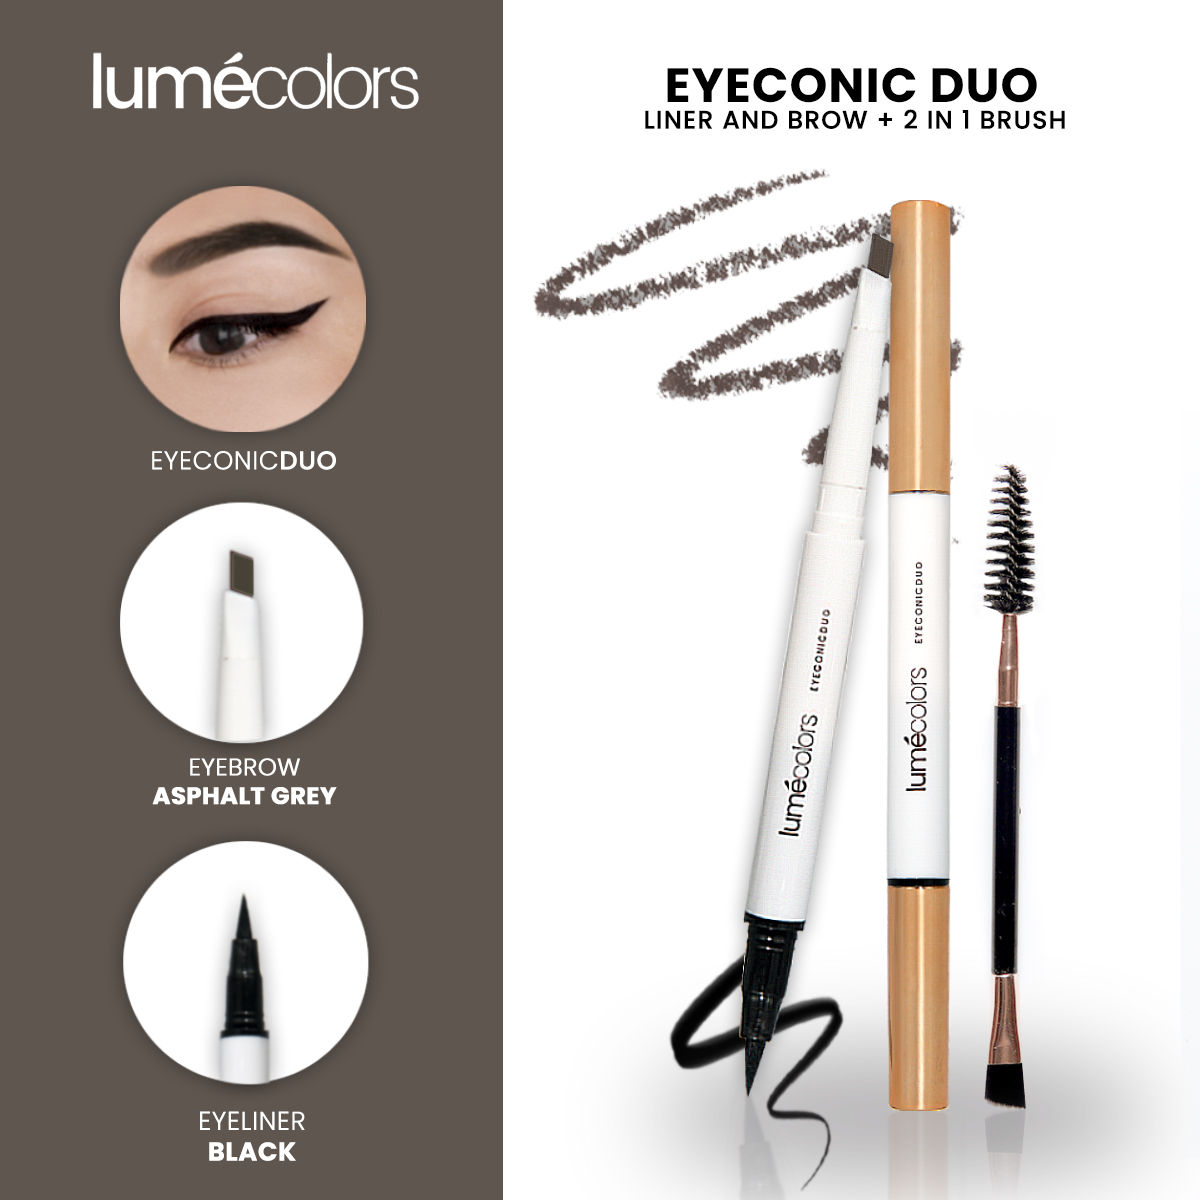 Lumecolors Eyeconic Duo Liner and brow 2 in 1 With brush - Asphaltgrey